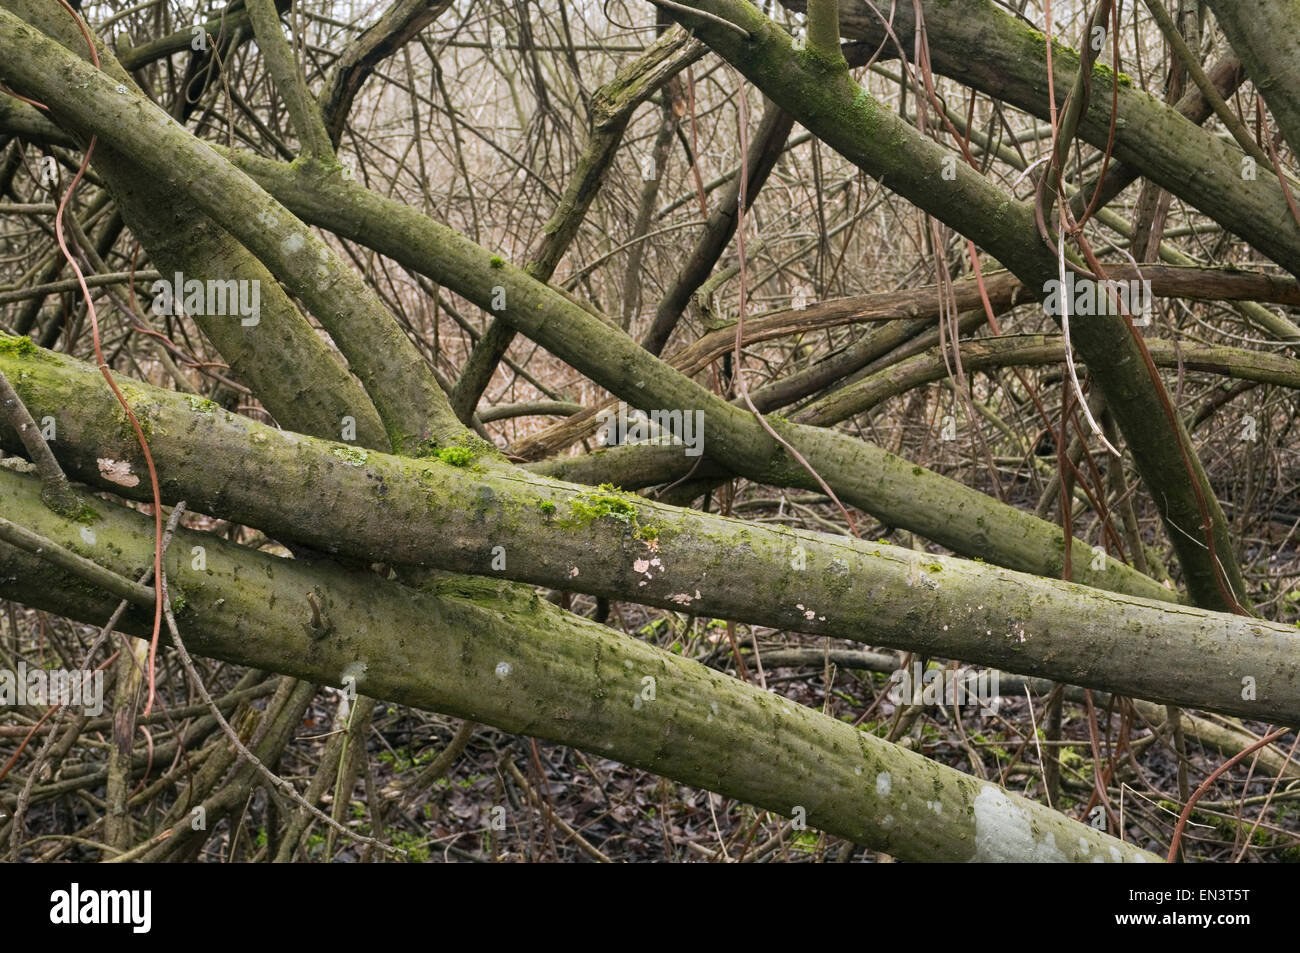 Dense forest branches - Stock Image